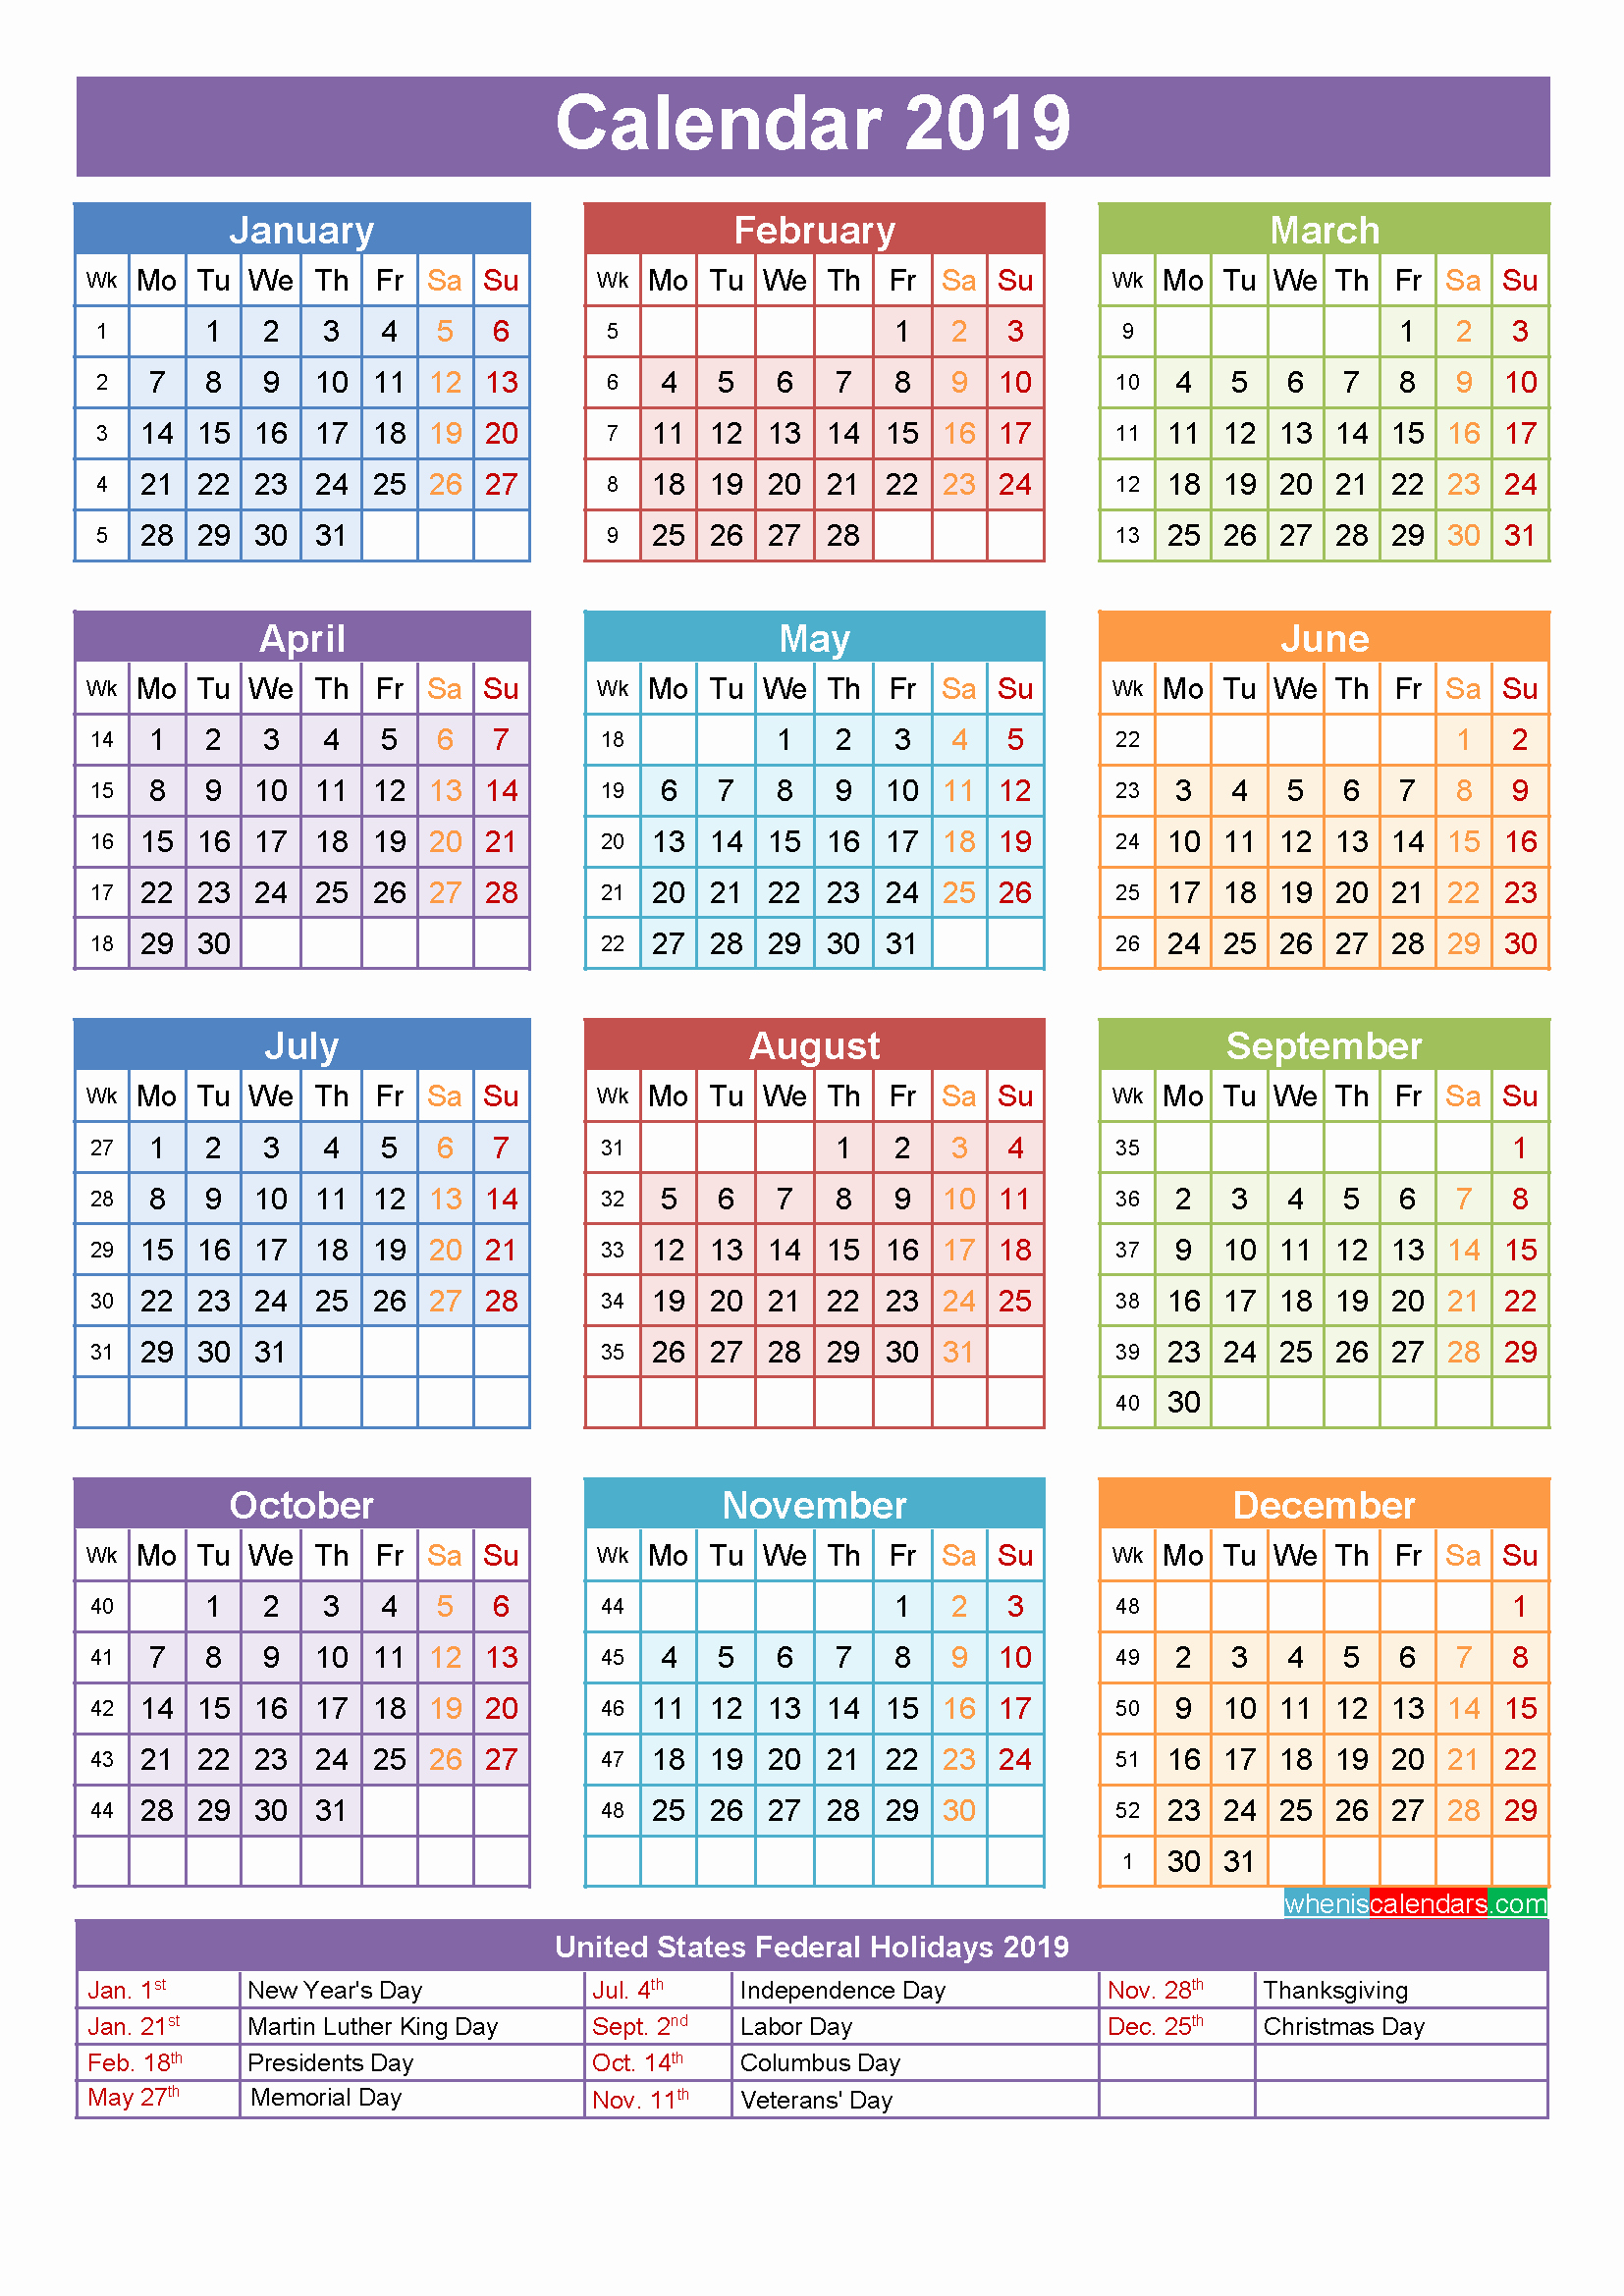 Calendar For Year 2019 Uae With Get Public Holidays Calender USA UK UAE Malaysia SA